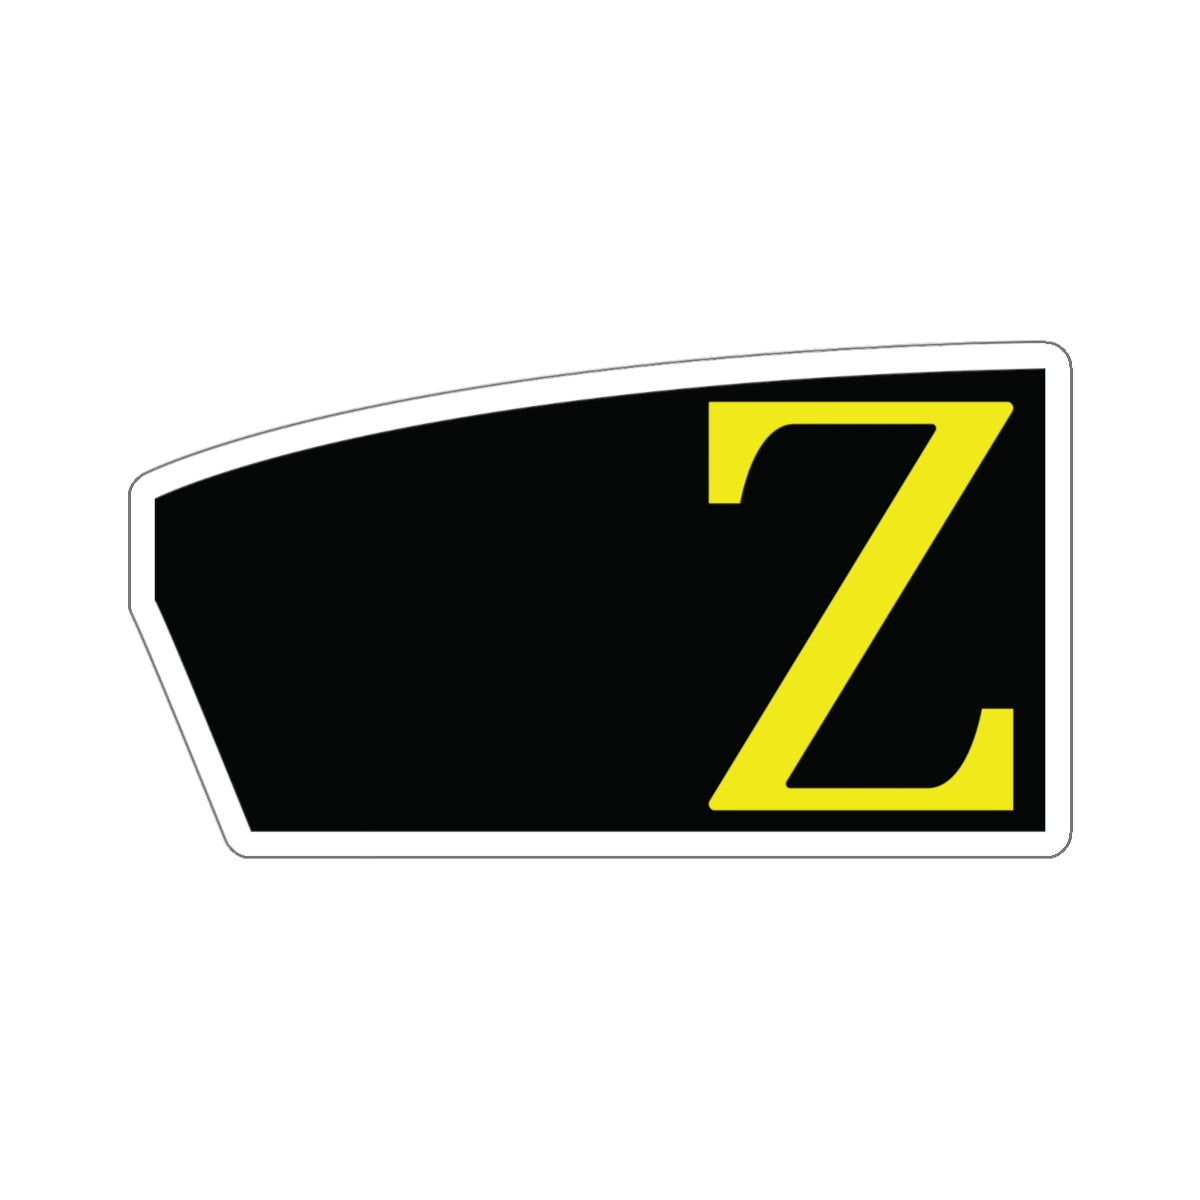 ZLAC Rowing Club Sticker